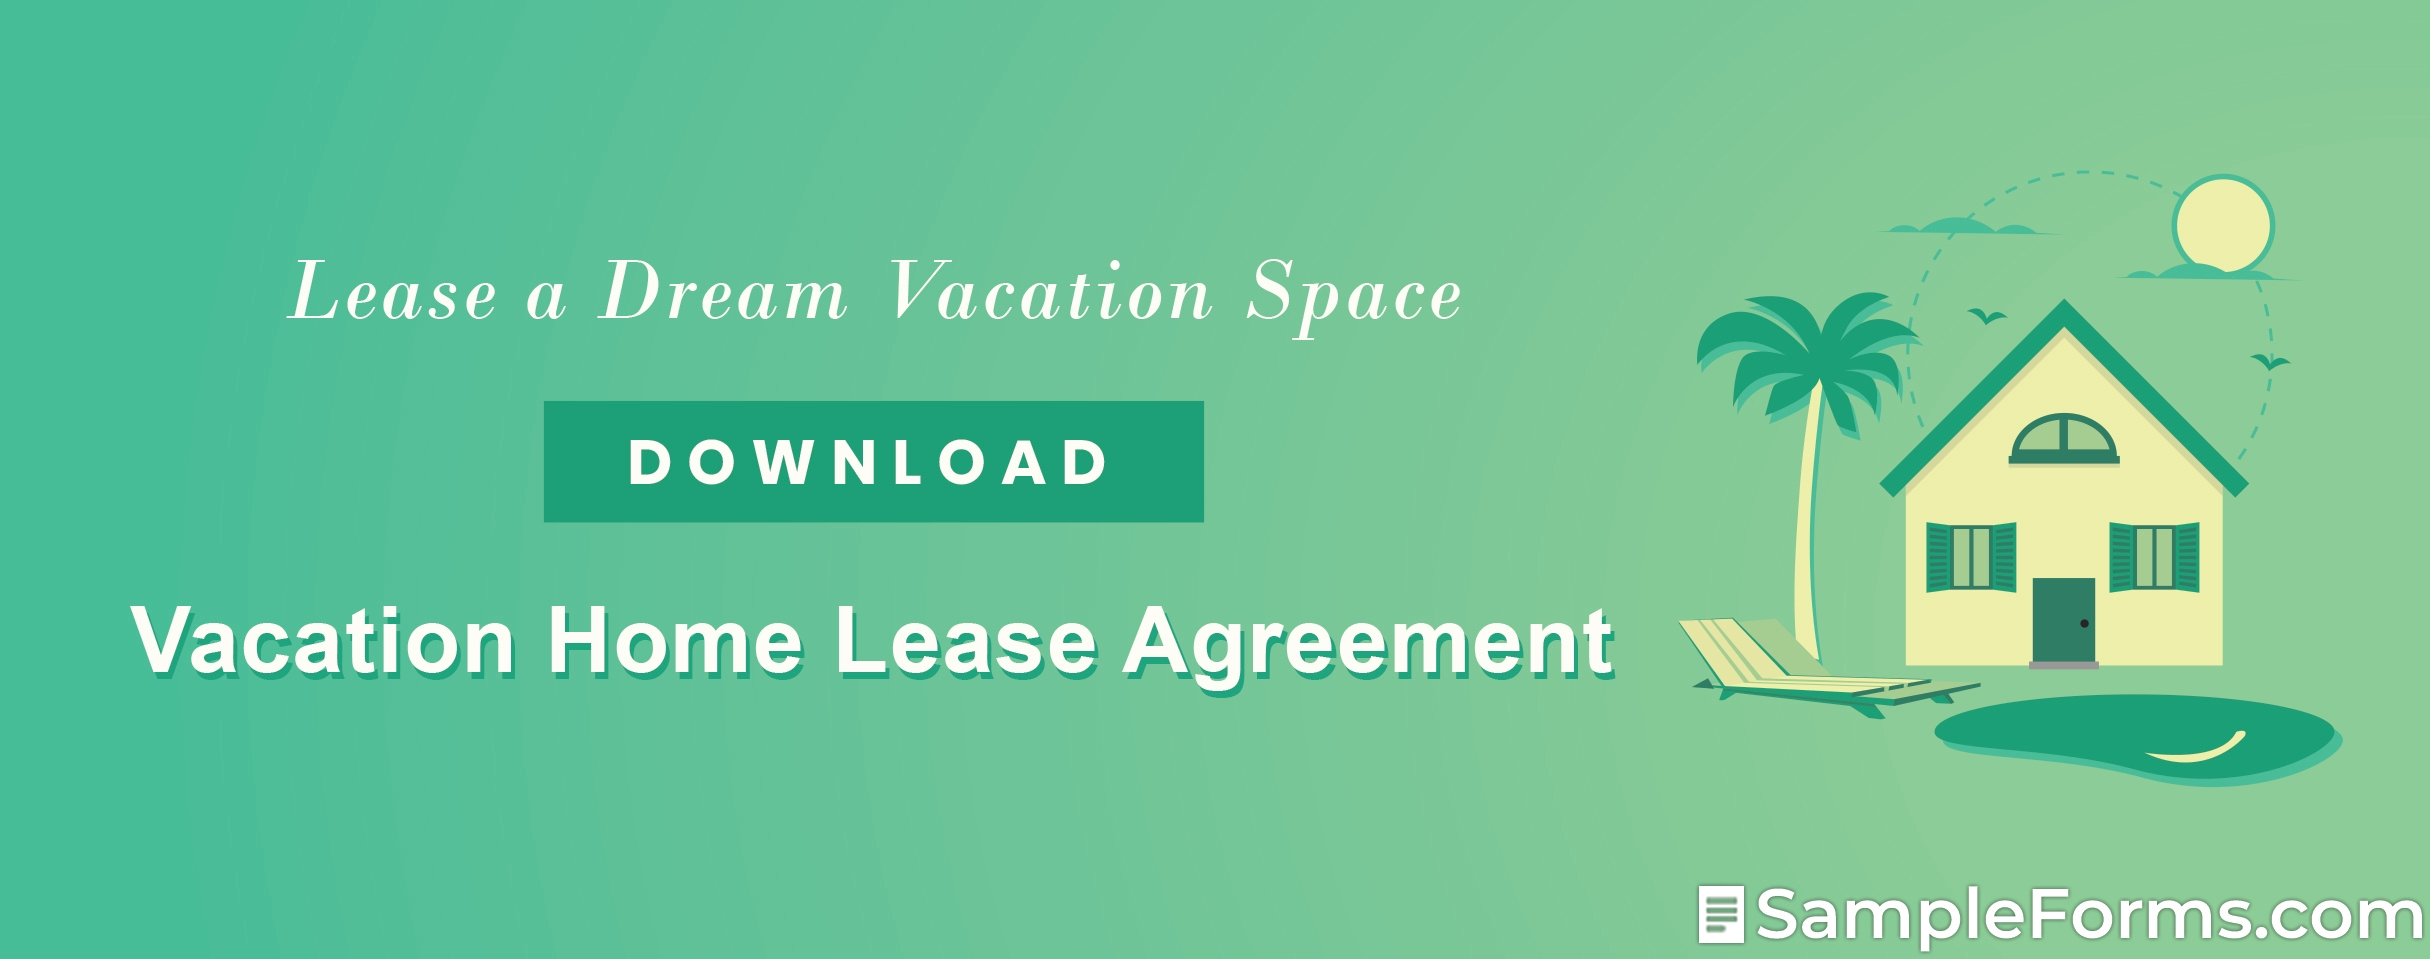 Vacation Home Lease